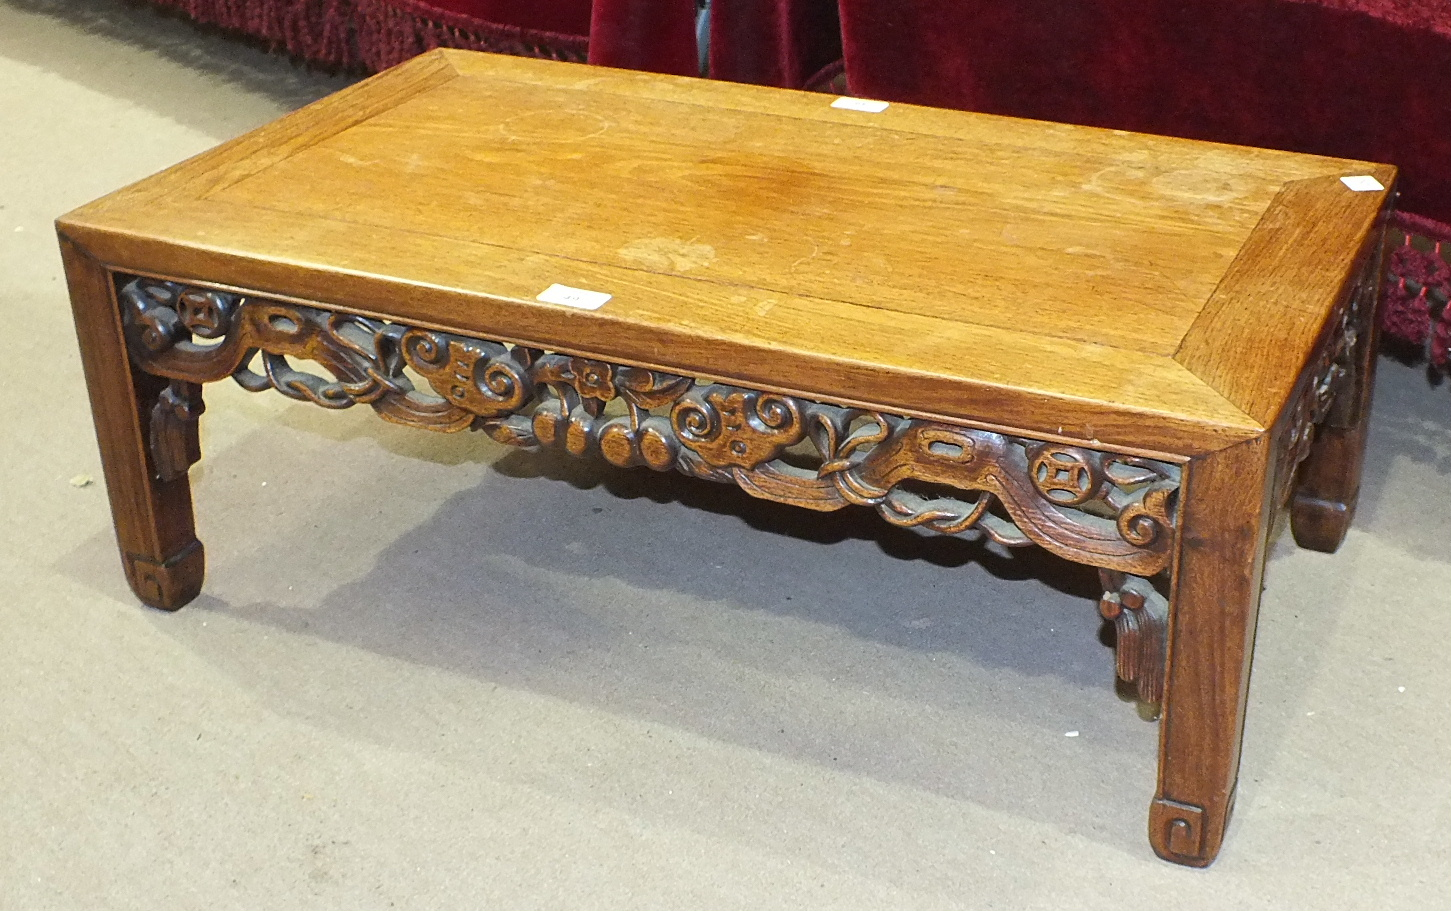 A Chinese small rectangular occasional table with pierced frieze, 76 x 44cm.